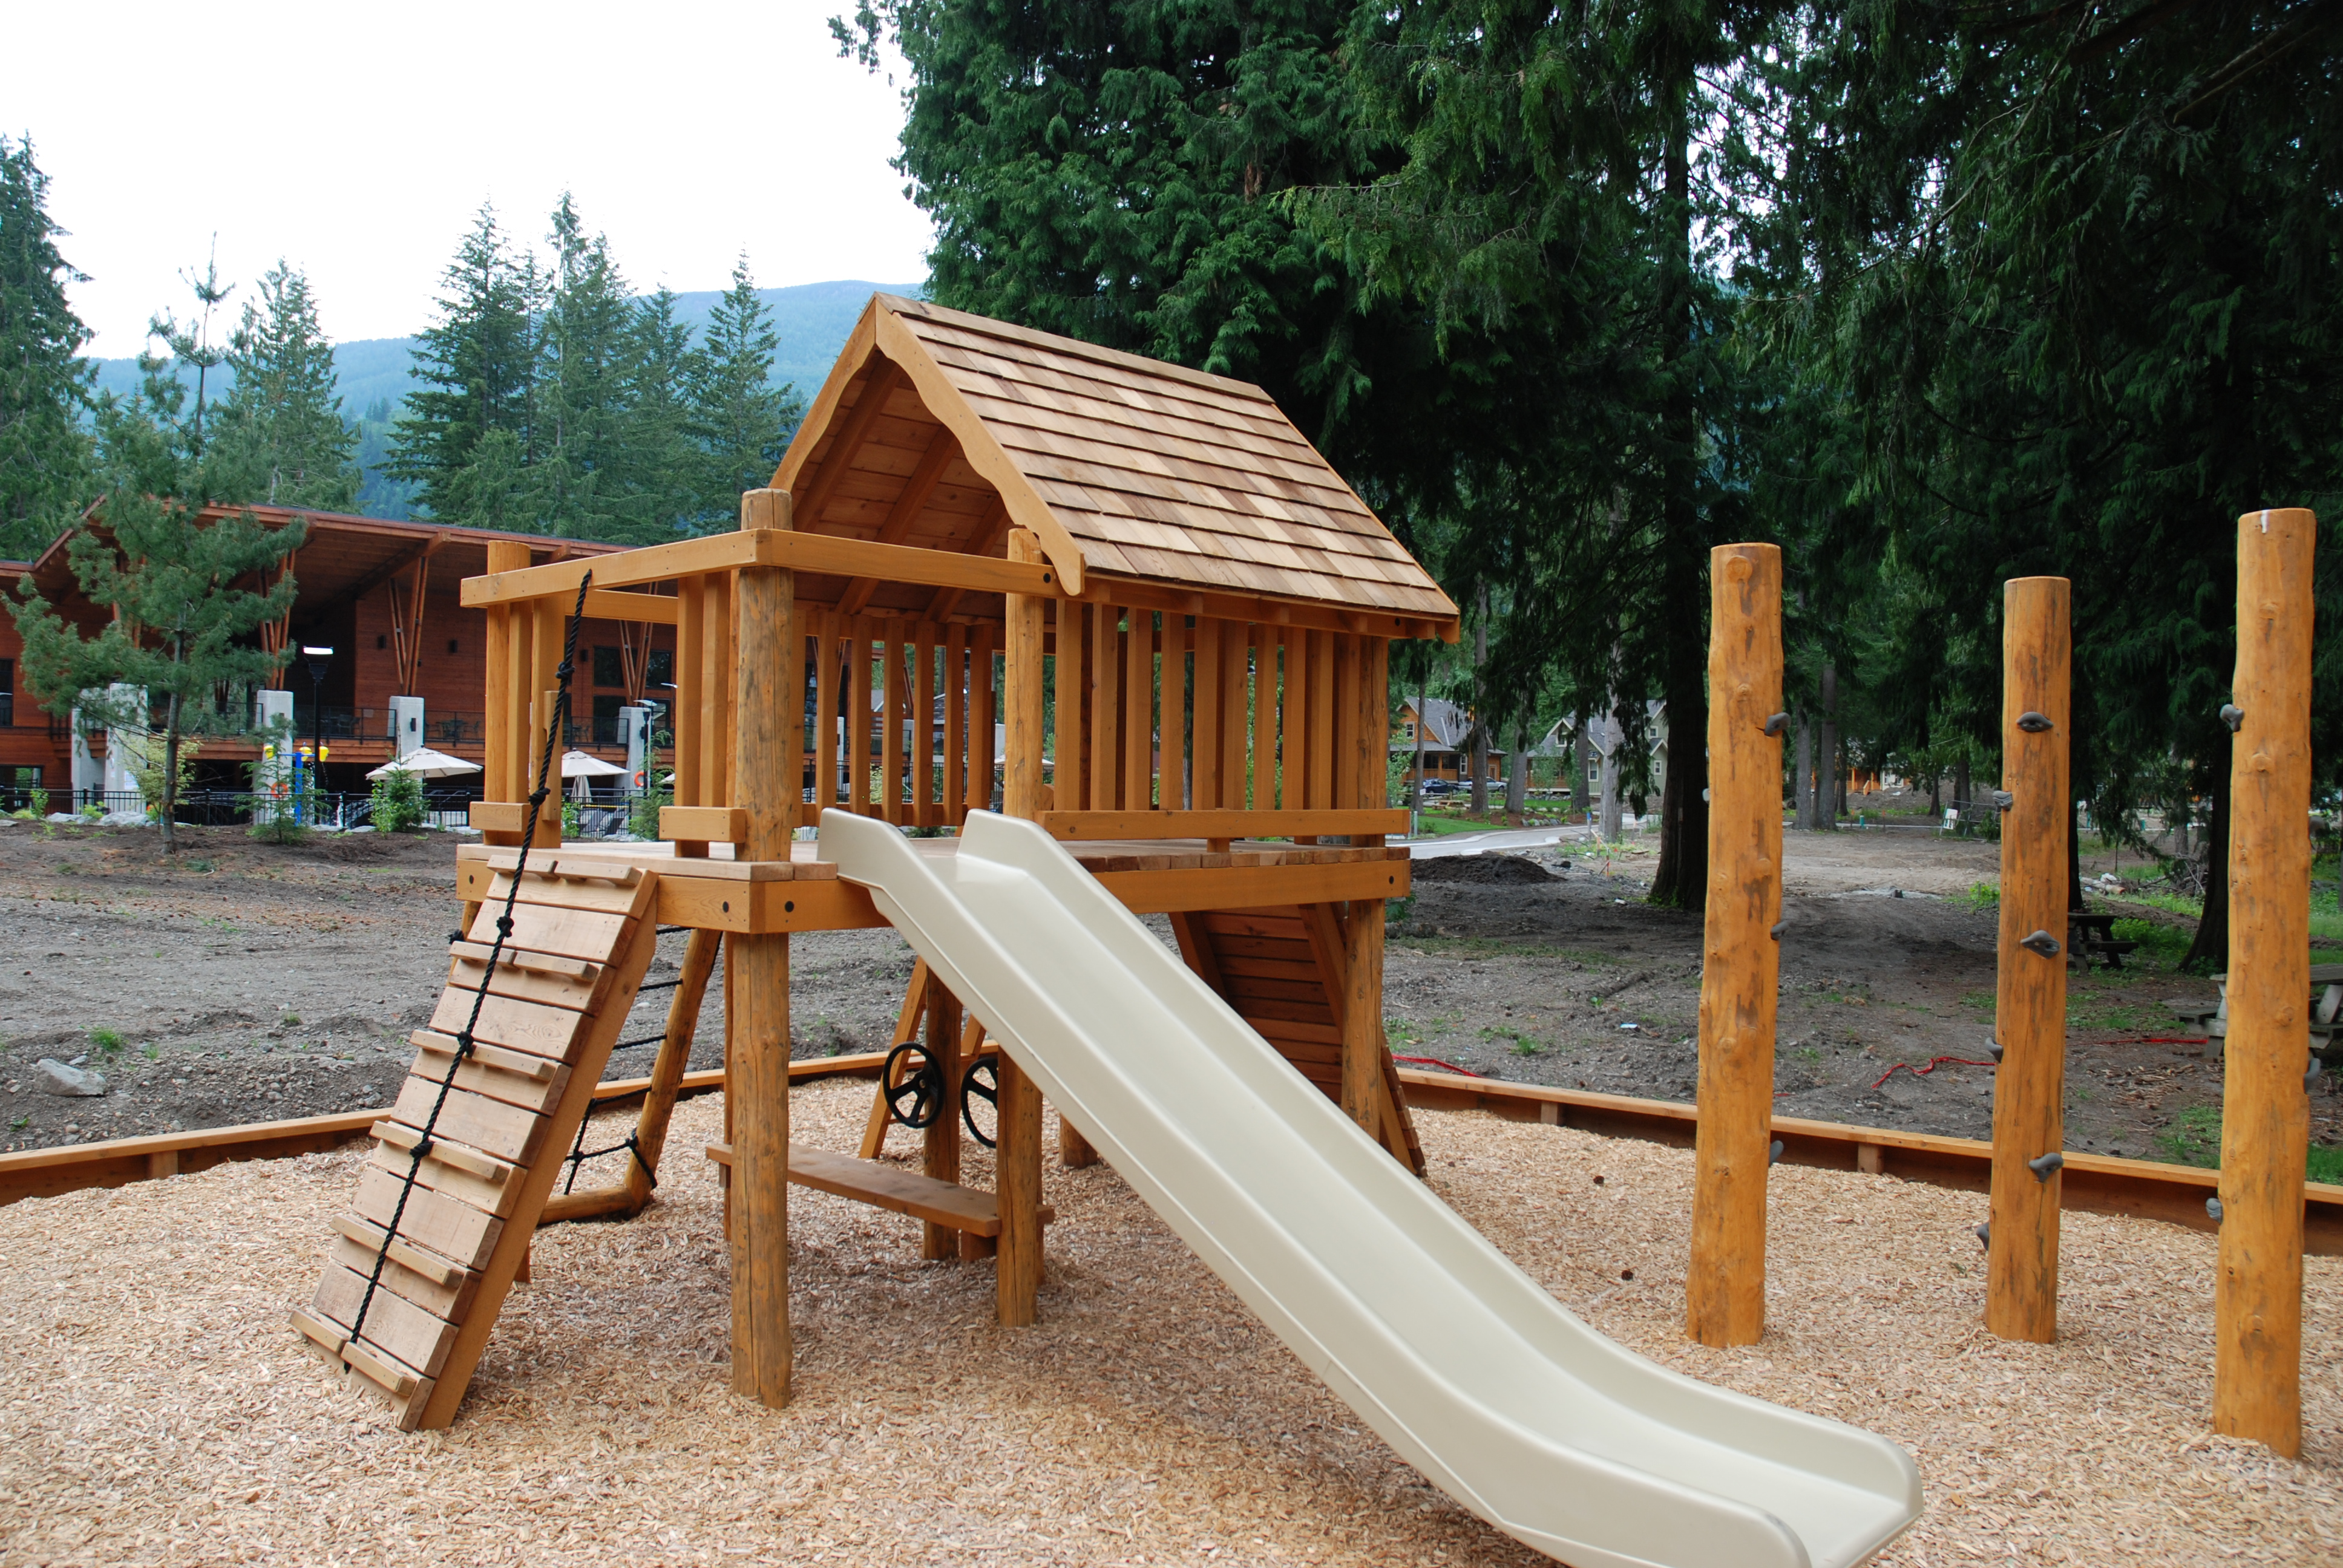 The cottages at cultus lake kid 39 s playpark climbing for Cabins at cultus lake